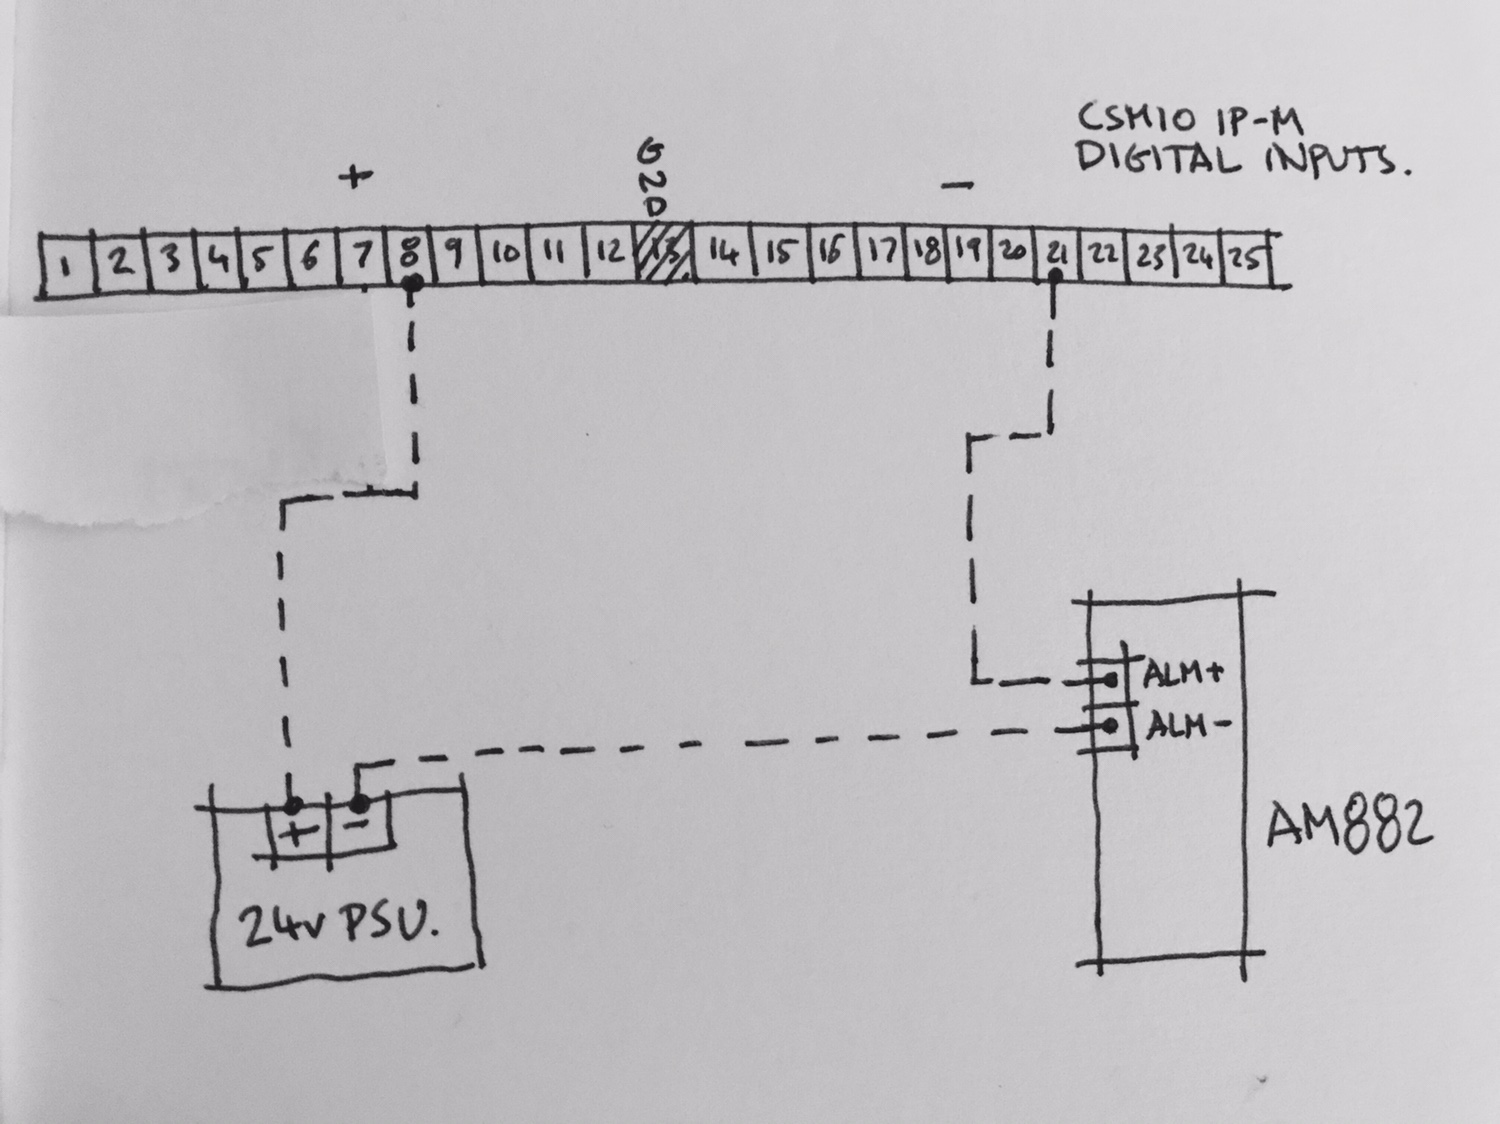 Build Log 3 Axis Cnc Router Page 47 Estop Relay Wiring Diagram He Also Mentioned Linking This Into The And Safety Circuit But I Havent Figured That Out Yet Suffice To Say Had It Wrong Before